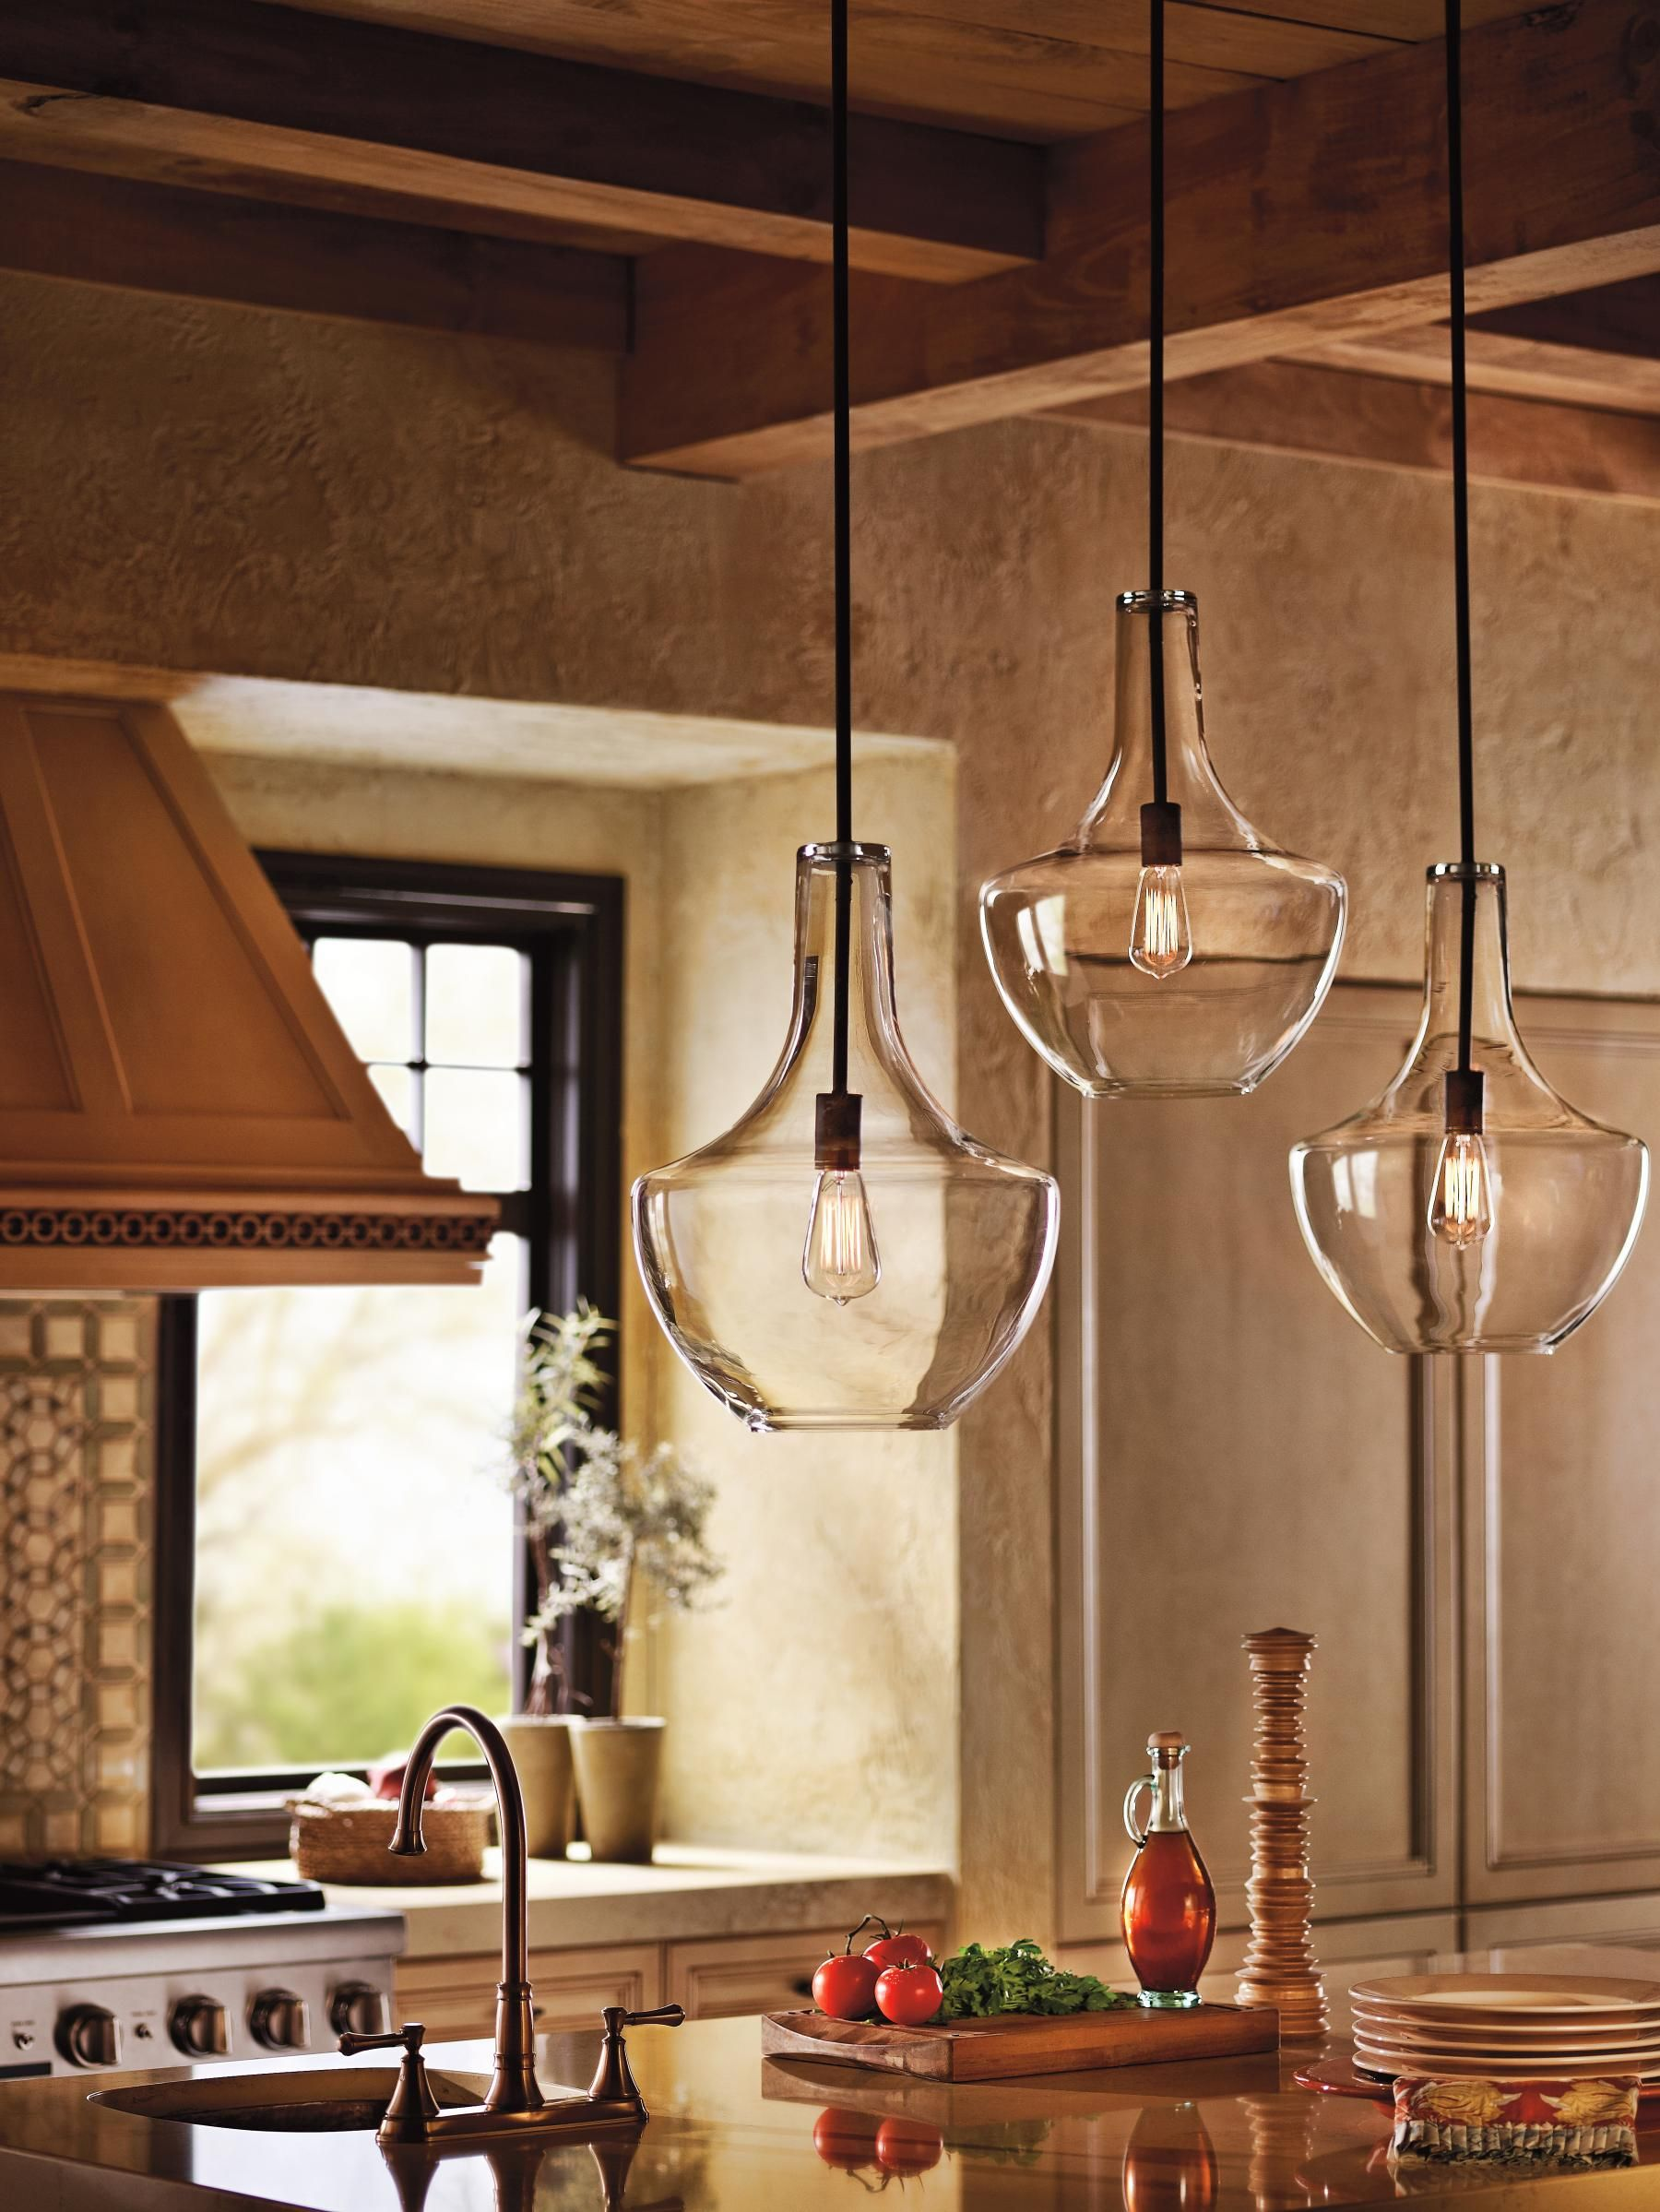 Everly Pendant | Brushed nickel, Pendant lighting and Pendants